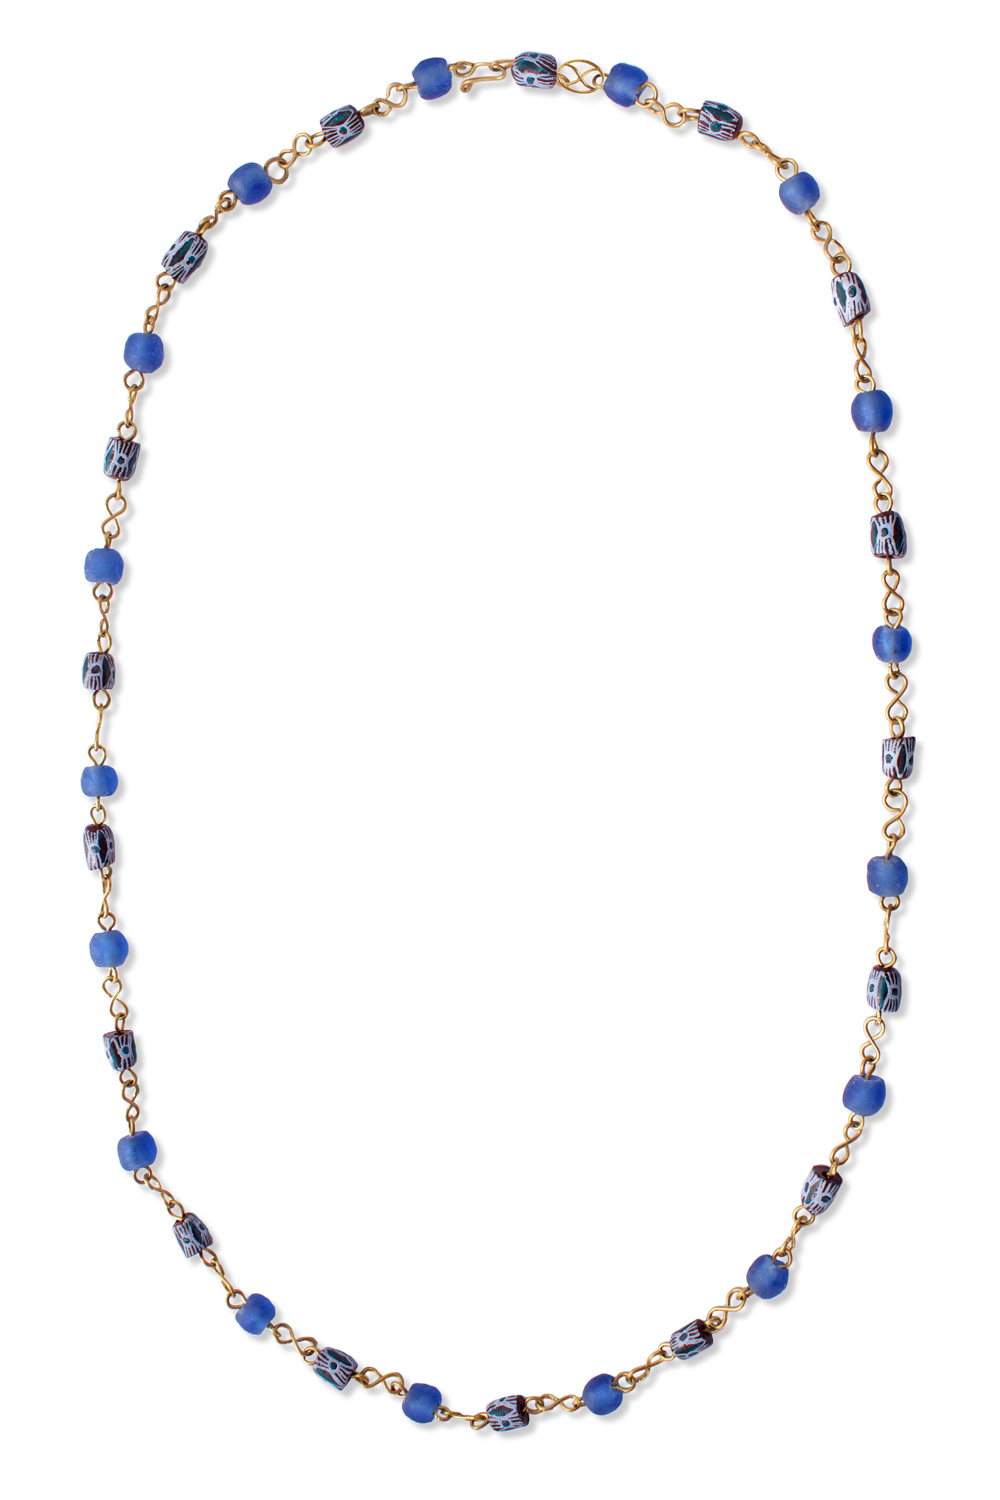 Blue African Trade Beads Necklace by SHIKHAZURI